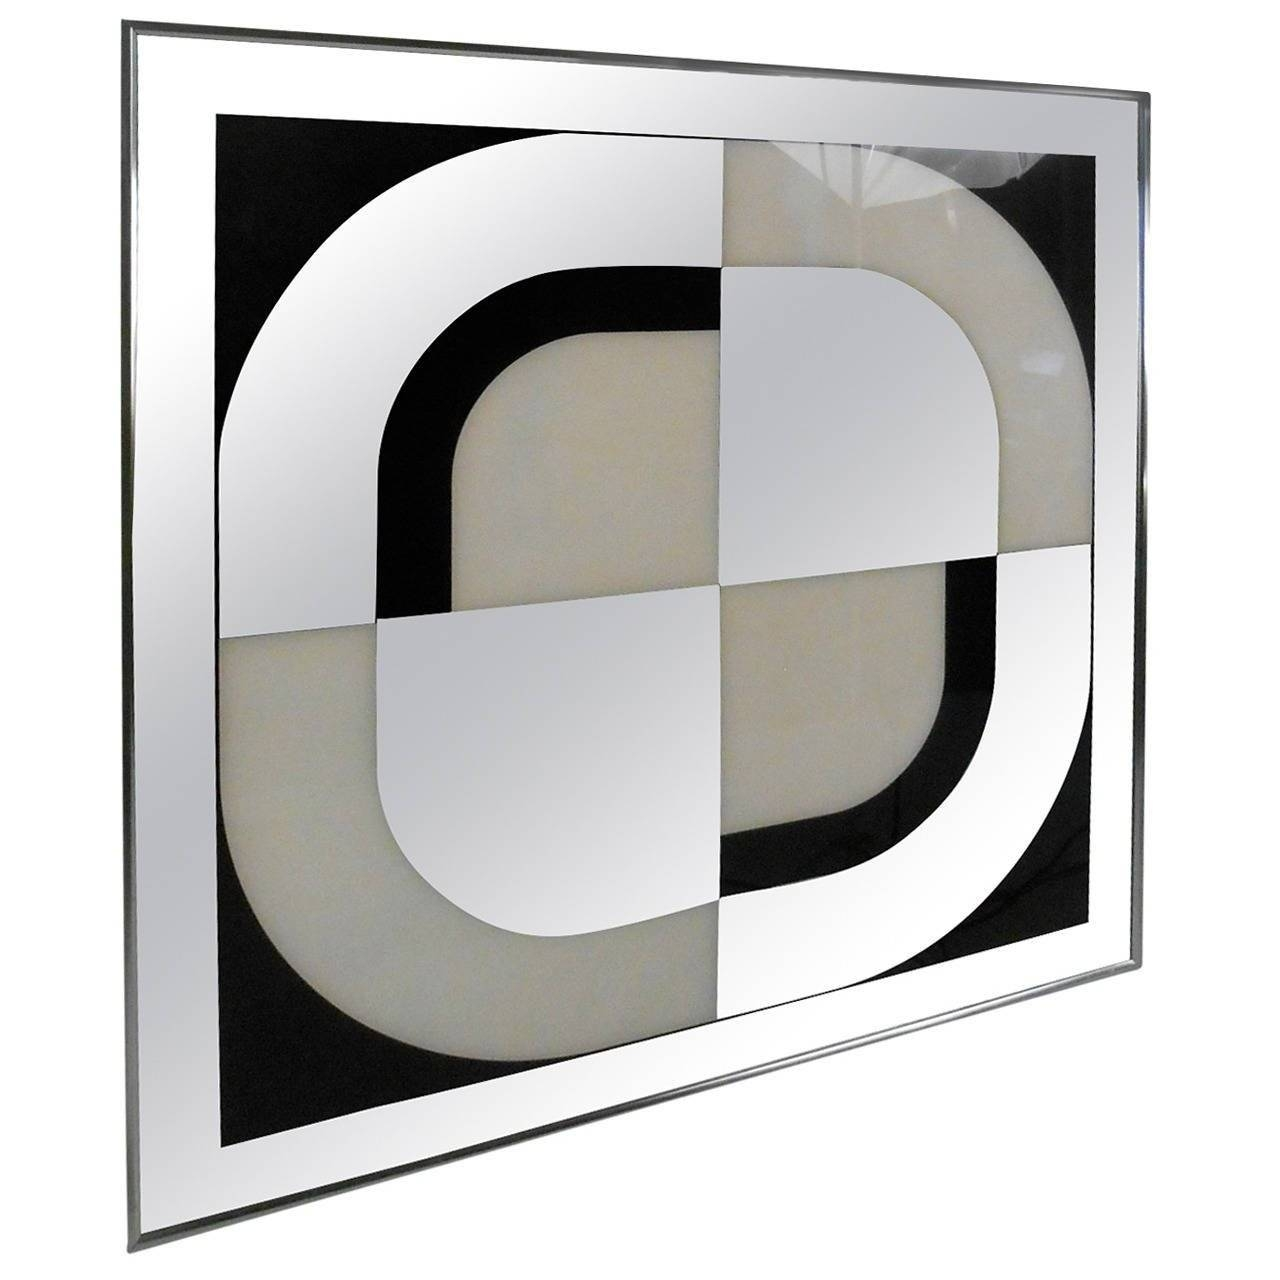 Unique Mid Century Modern Mirrored Wall Artturner Design For Within Latest Modern Mirrored Wall Art (View 15 of 20)